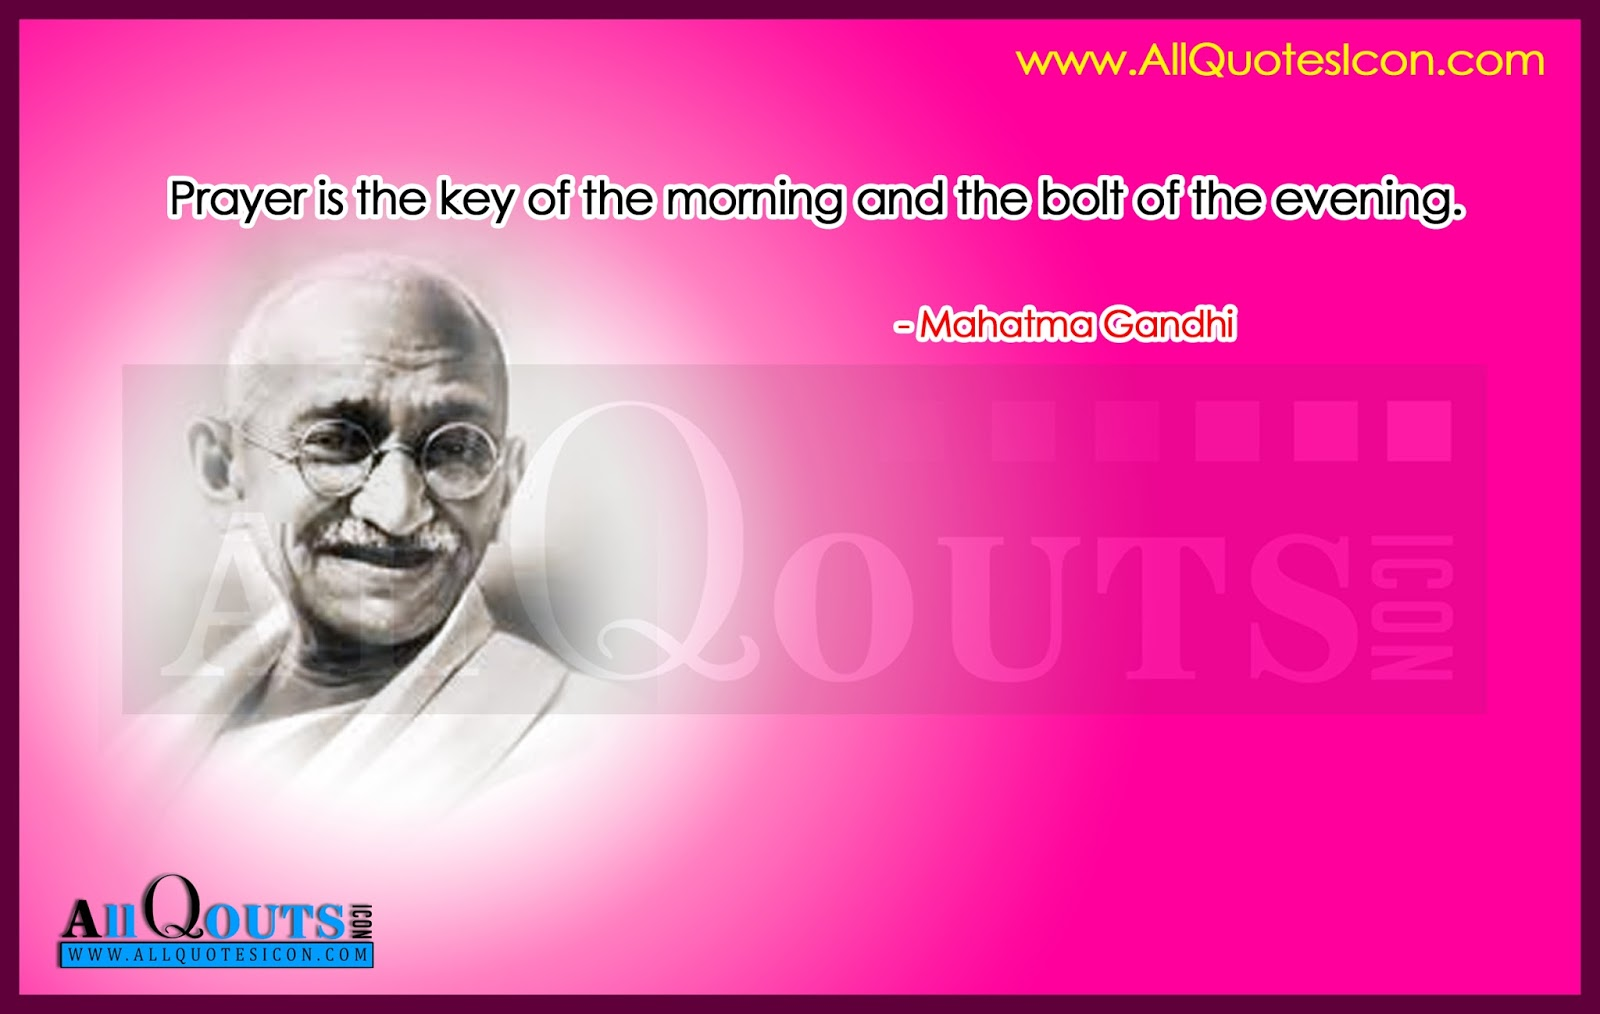 Gandi Picture English mahatma gandi sayings and quotes in english hd wallpapers